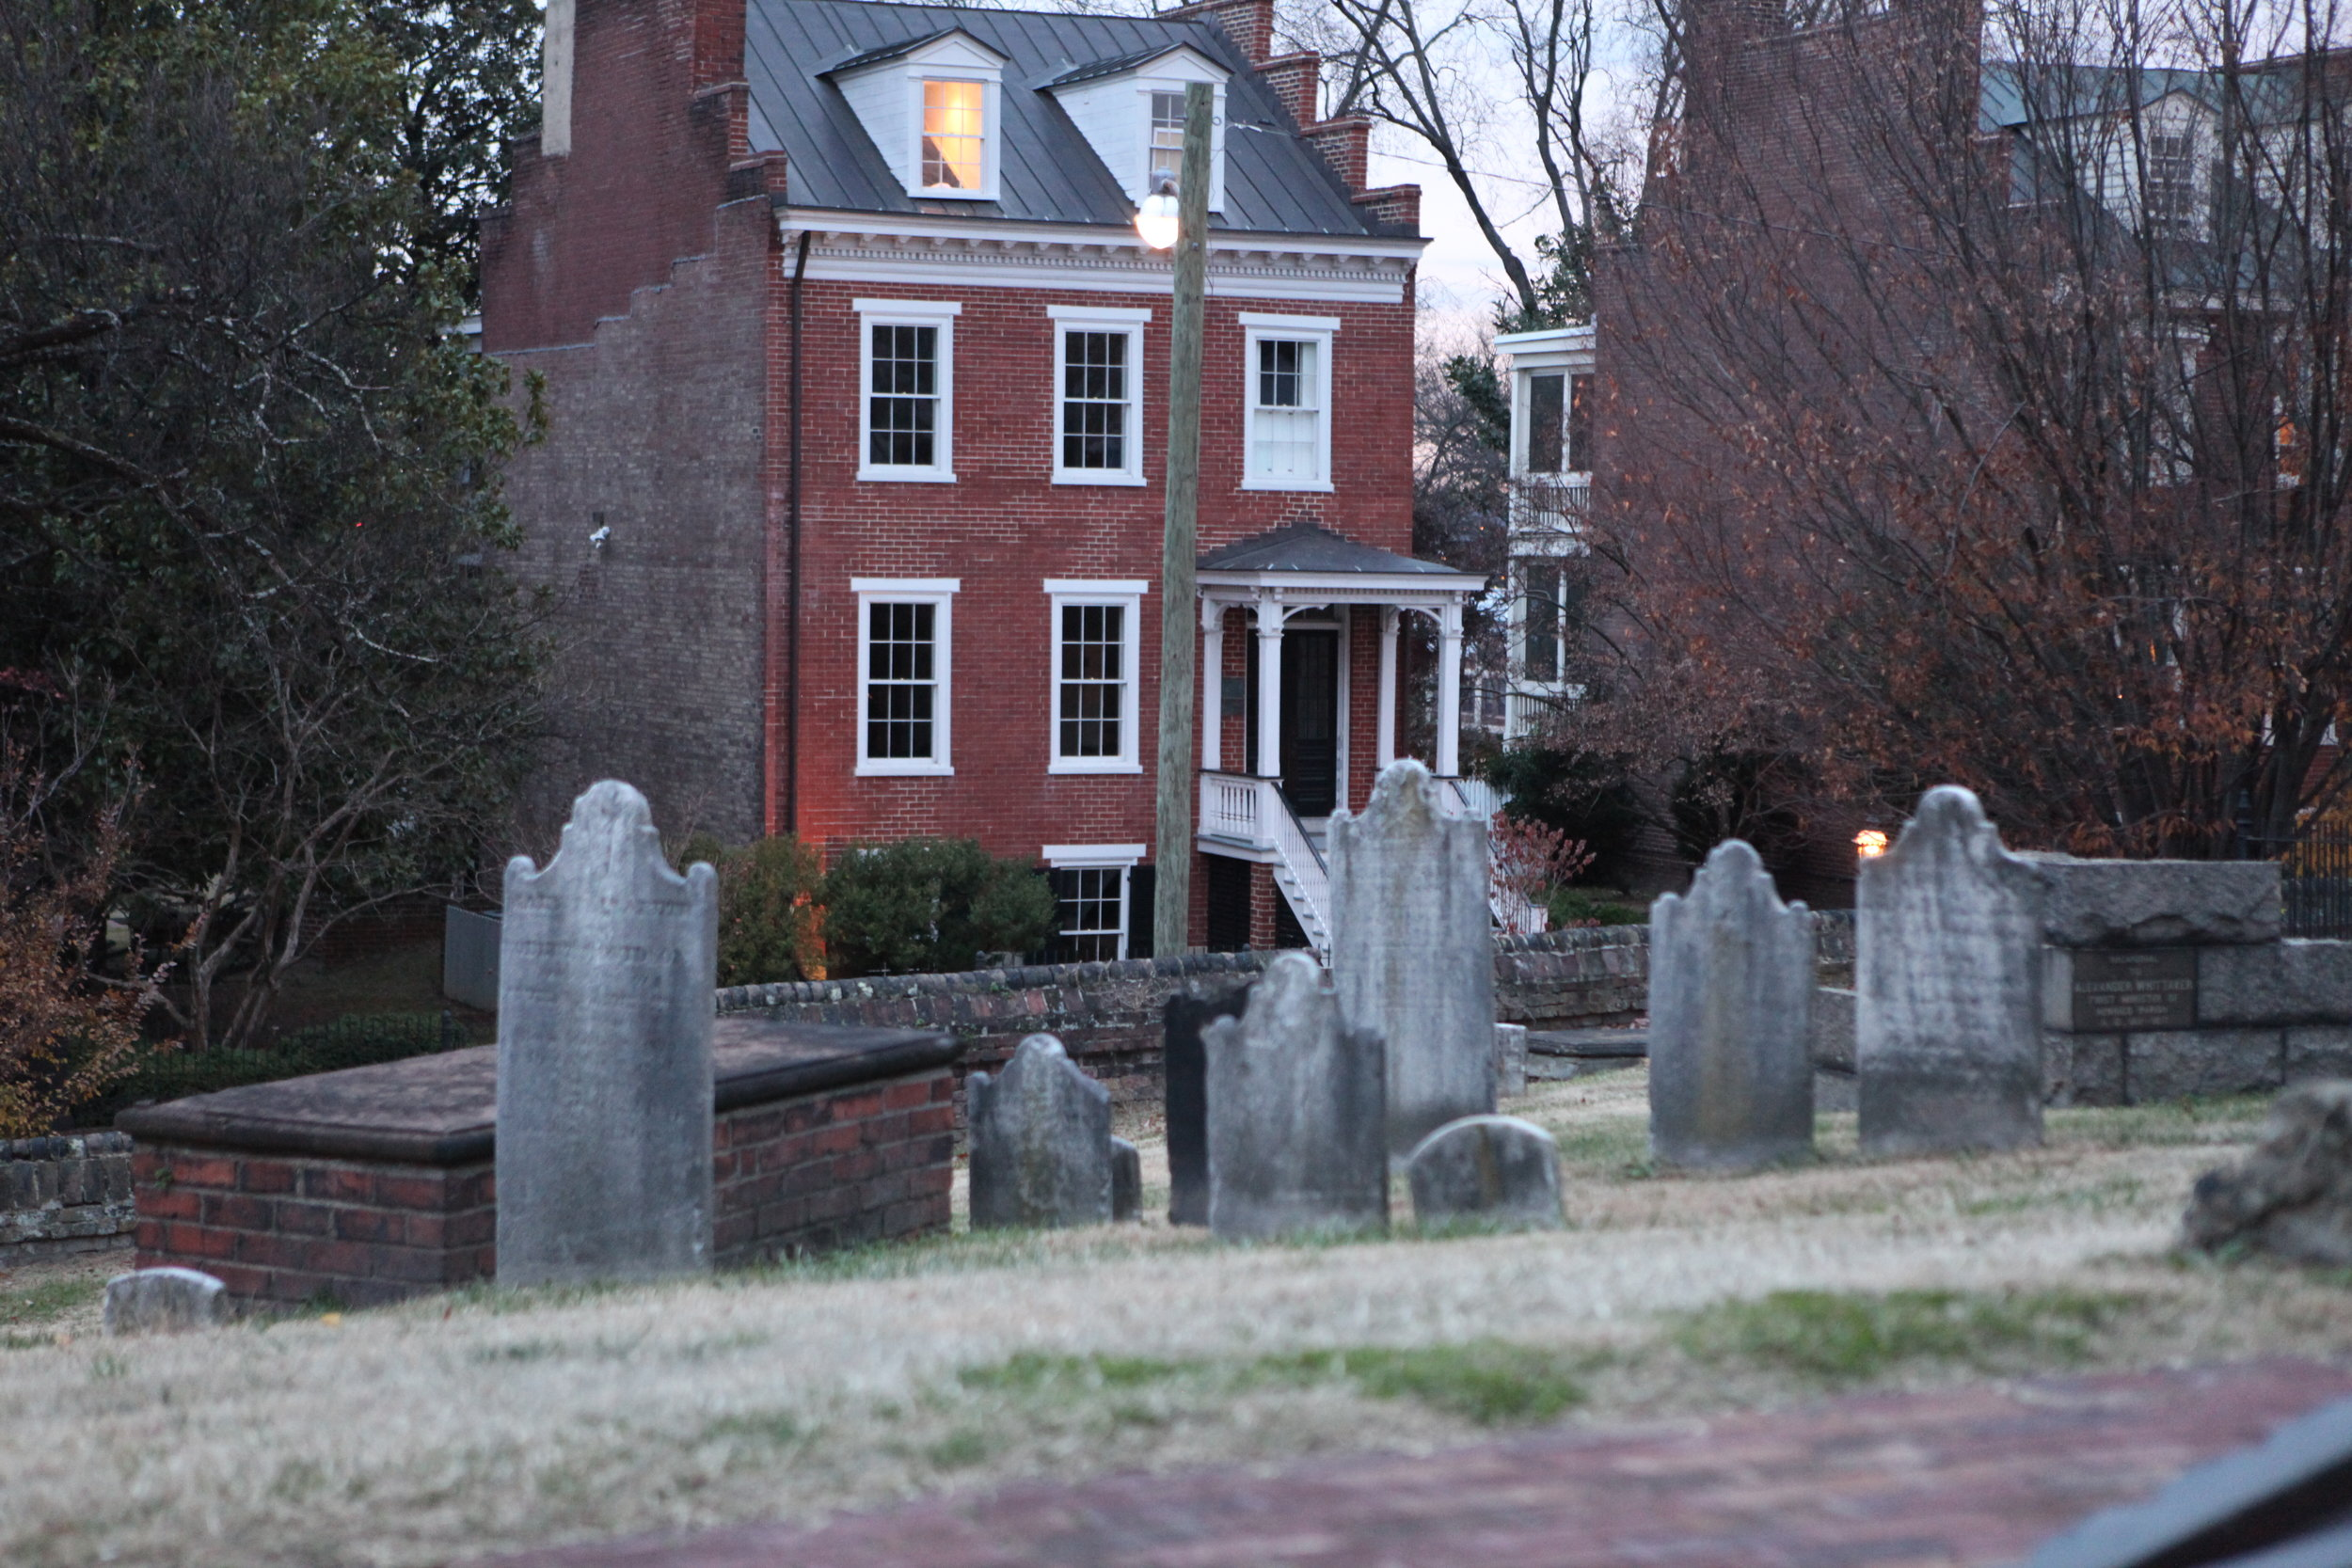 Headstones in the southwest corner, across from the Elmira Shelton house. Elmira Shelton was Edgar Allan Poe's first and last love.